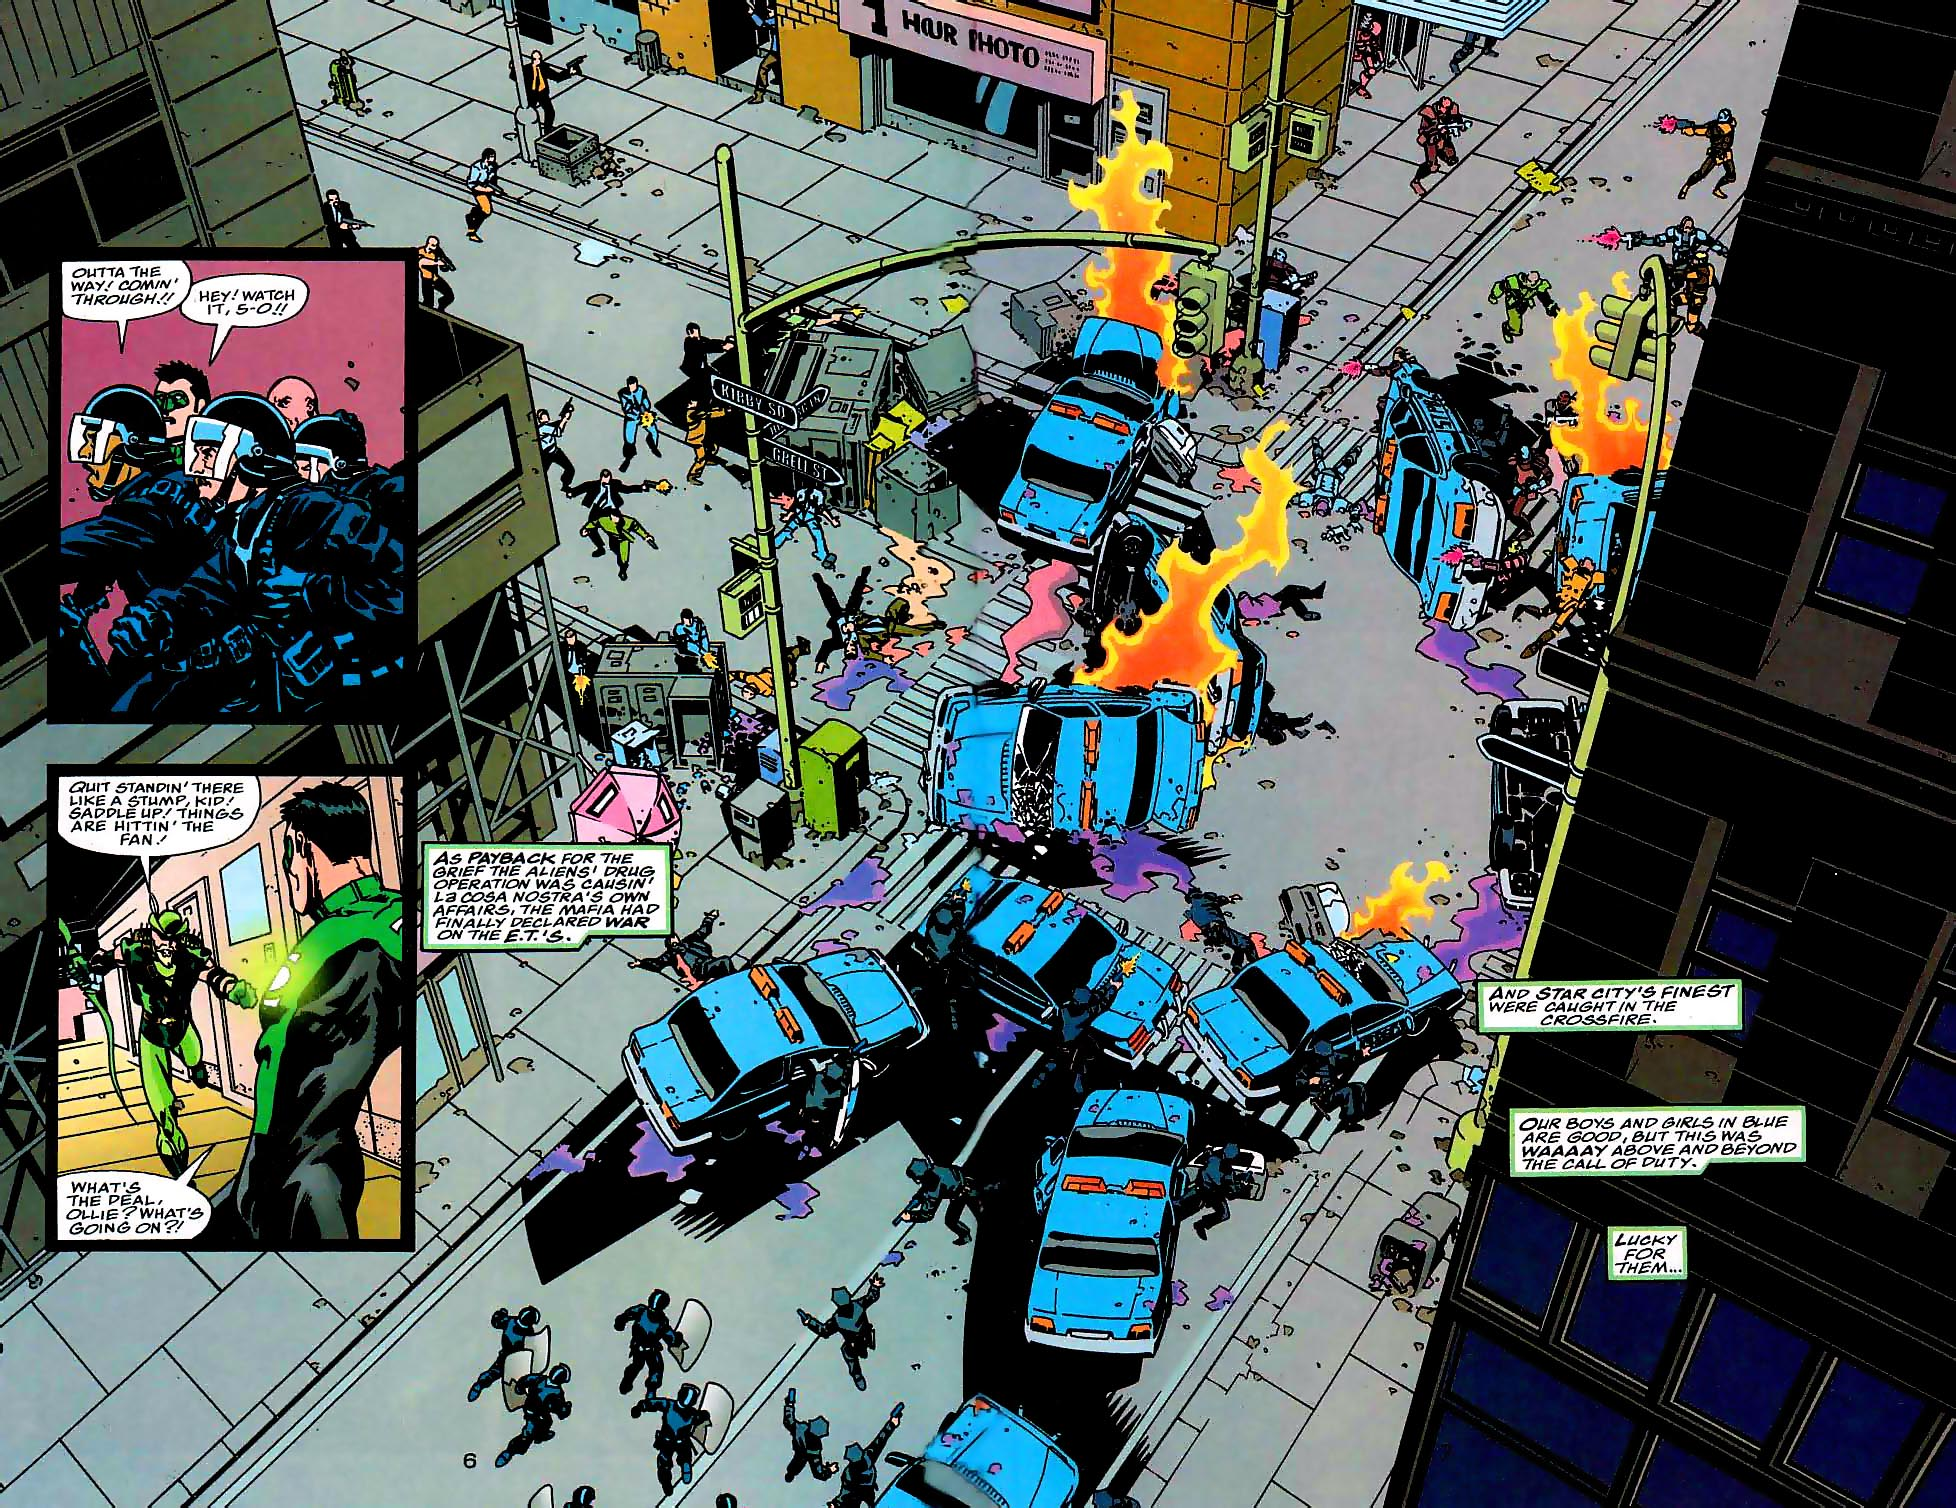 green arrow v2 25 (kebbin) 06-07Chaos.jpg